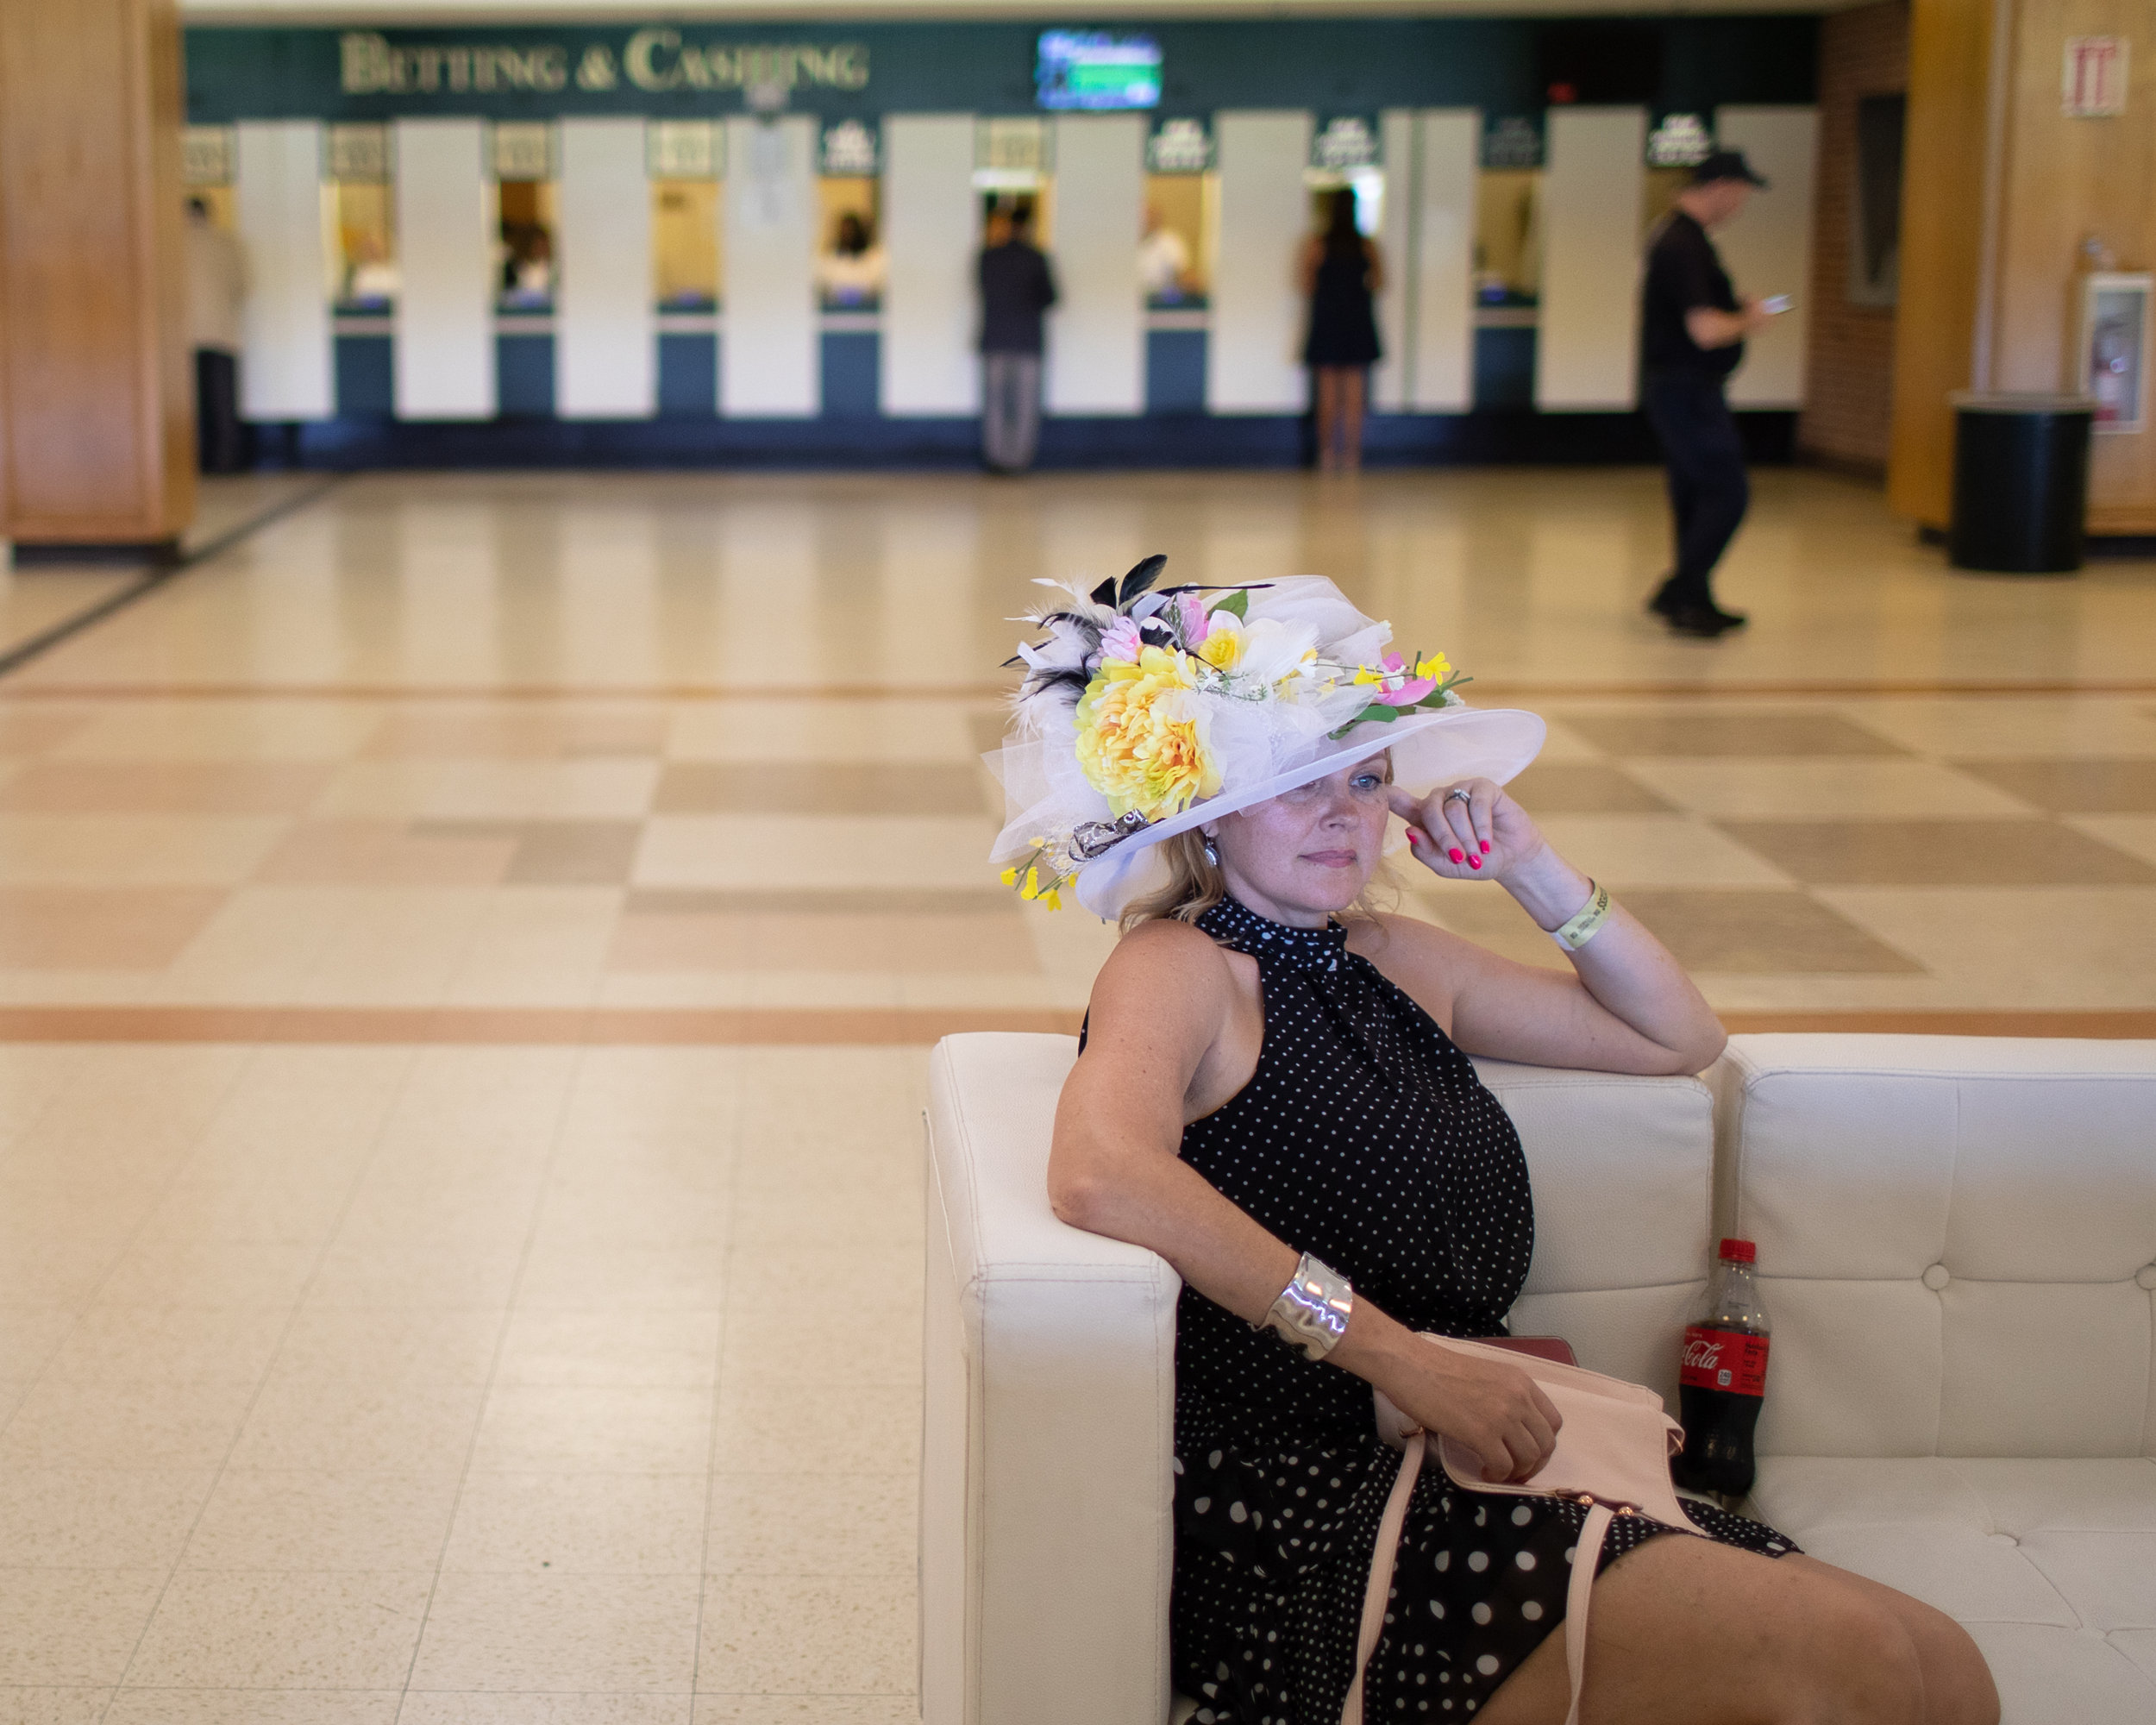 Shanyn Nelson, from Ellicott City, MD, was completing a bucket list item to see all three races of the Triple Crown. She started making her own hats with a friend this year and both are working to create a business to sell affordable race day hats.